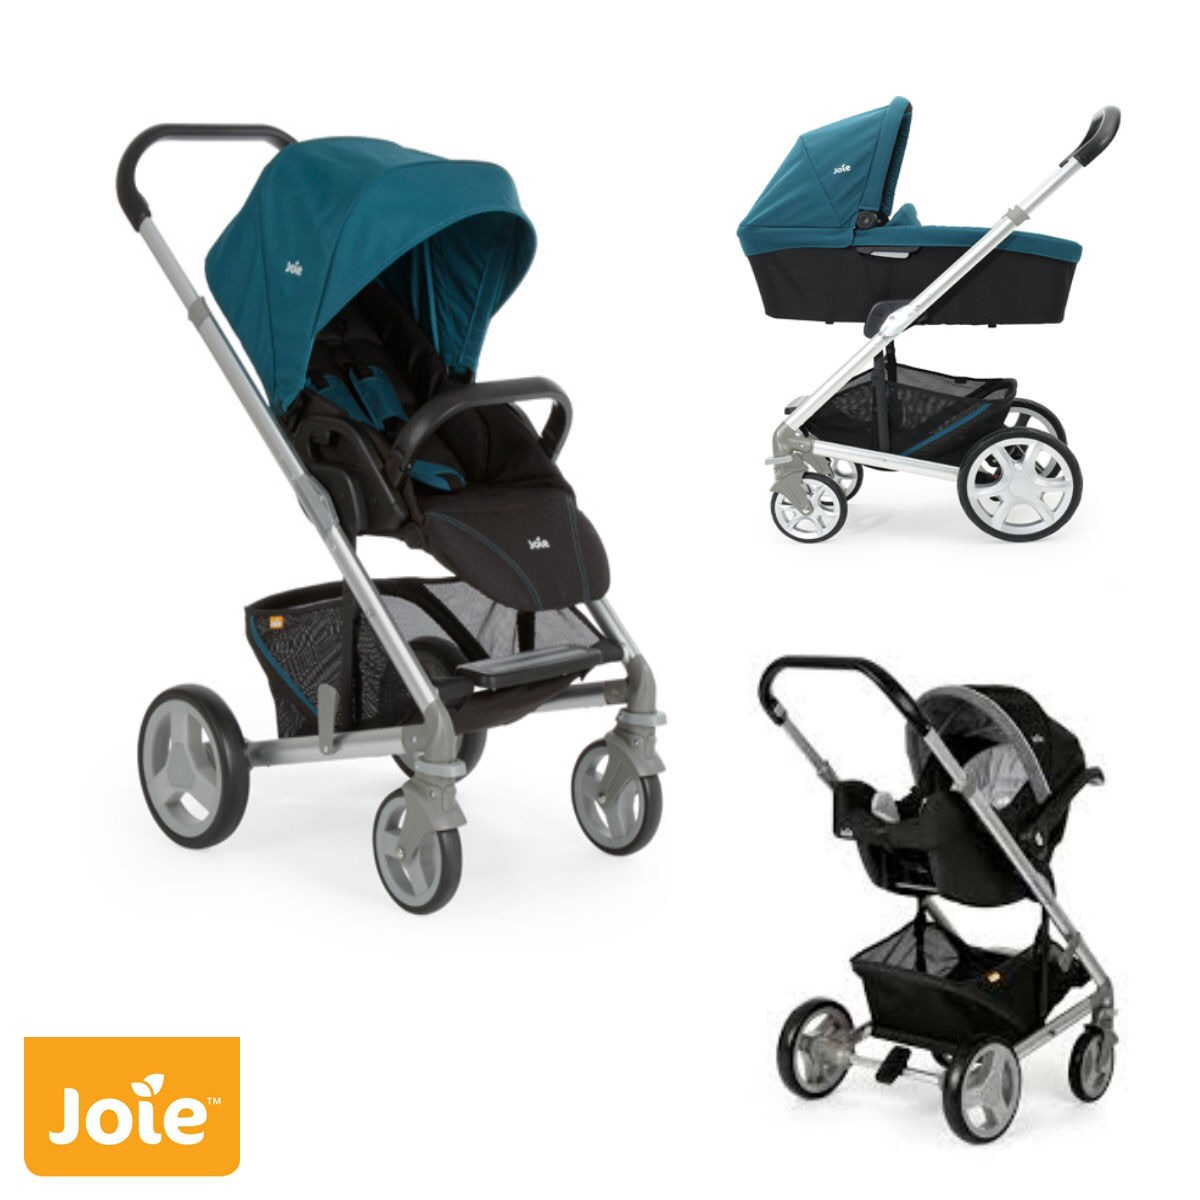 Travel System Joie Chrome Joie Chrome Review Dodgingtigers